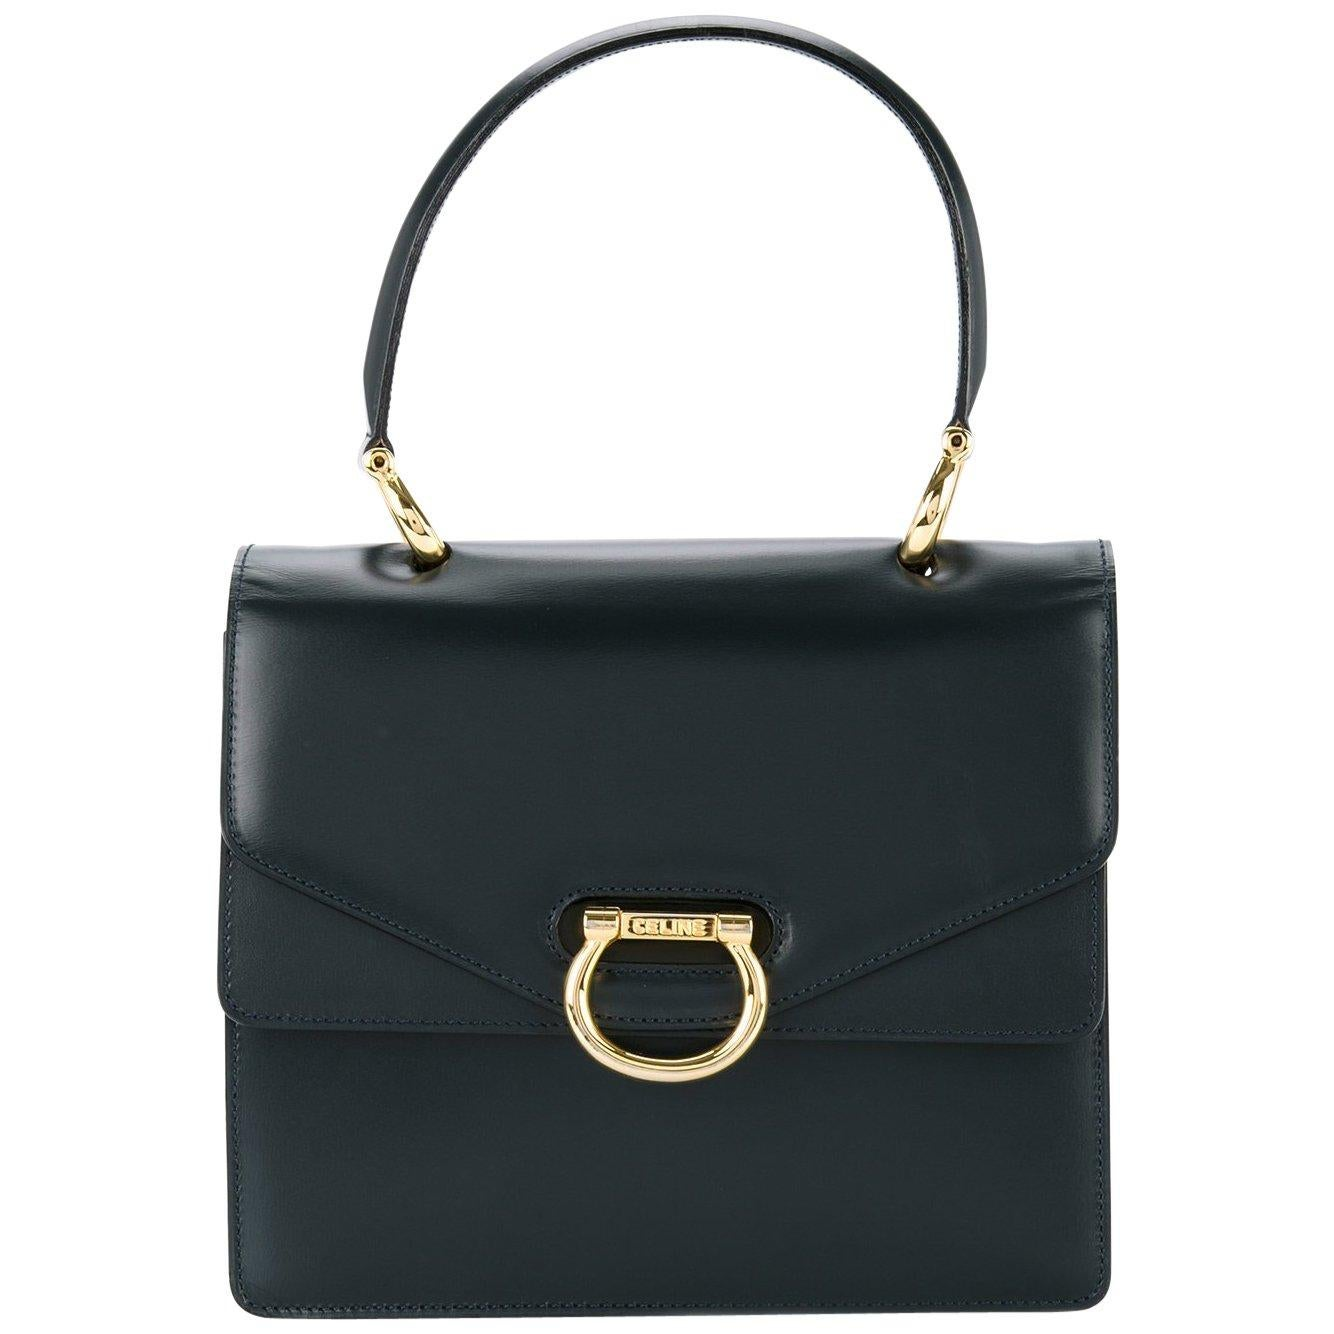 Celine Black Leather Toggle Kelly Style Evening Top Handle Satchel Bag